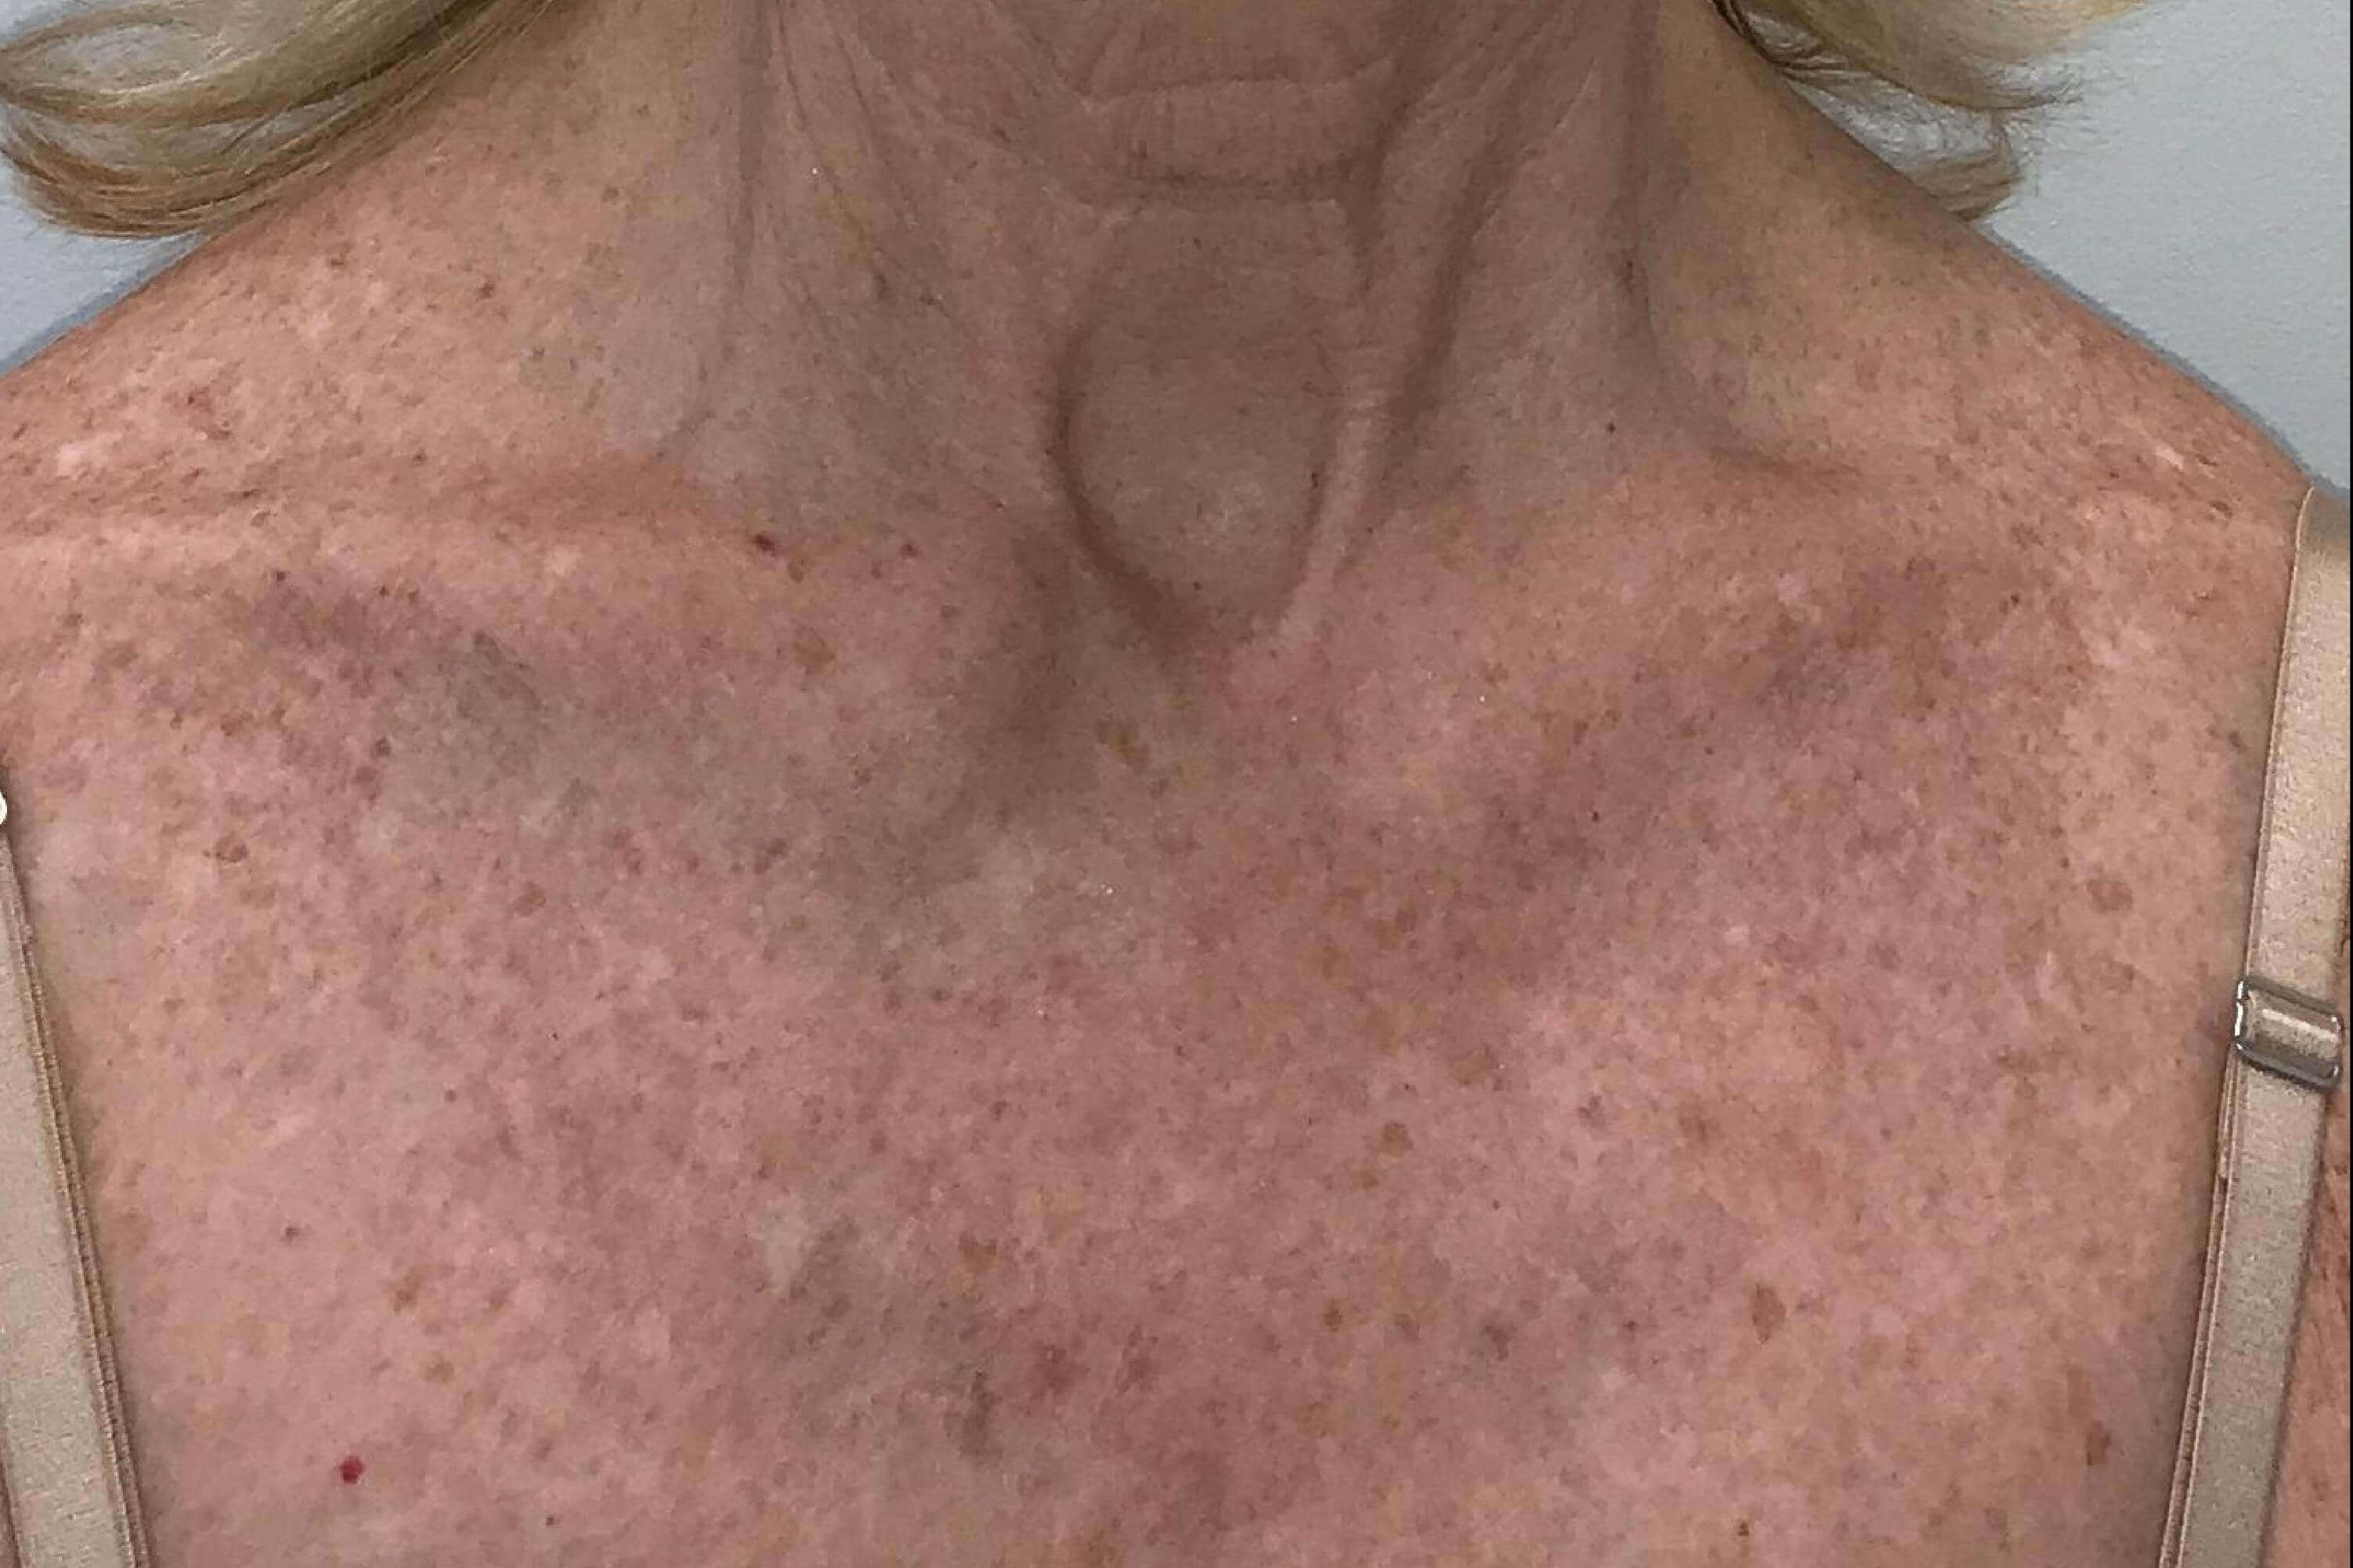 IPL and 1540 Laser Resurfacing Before IPL/Laser Resurfacing